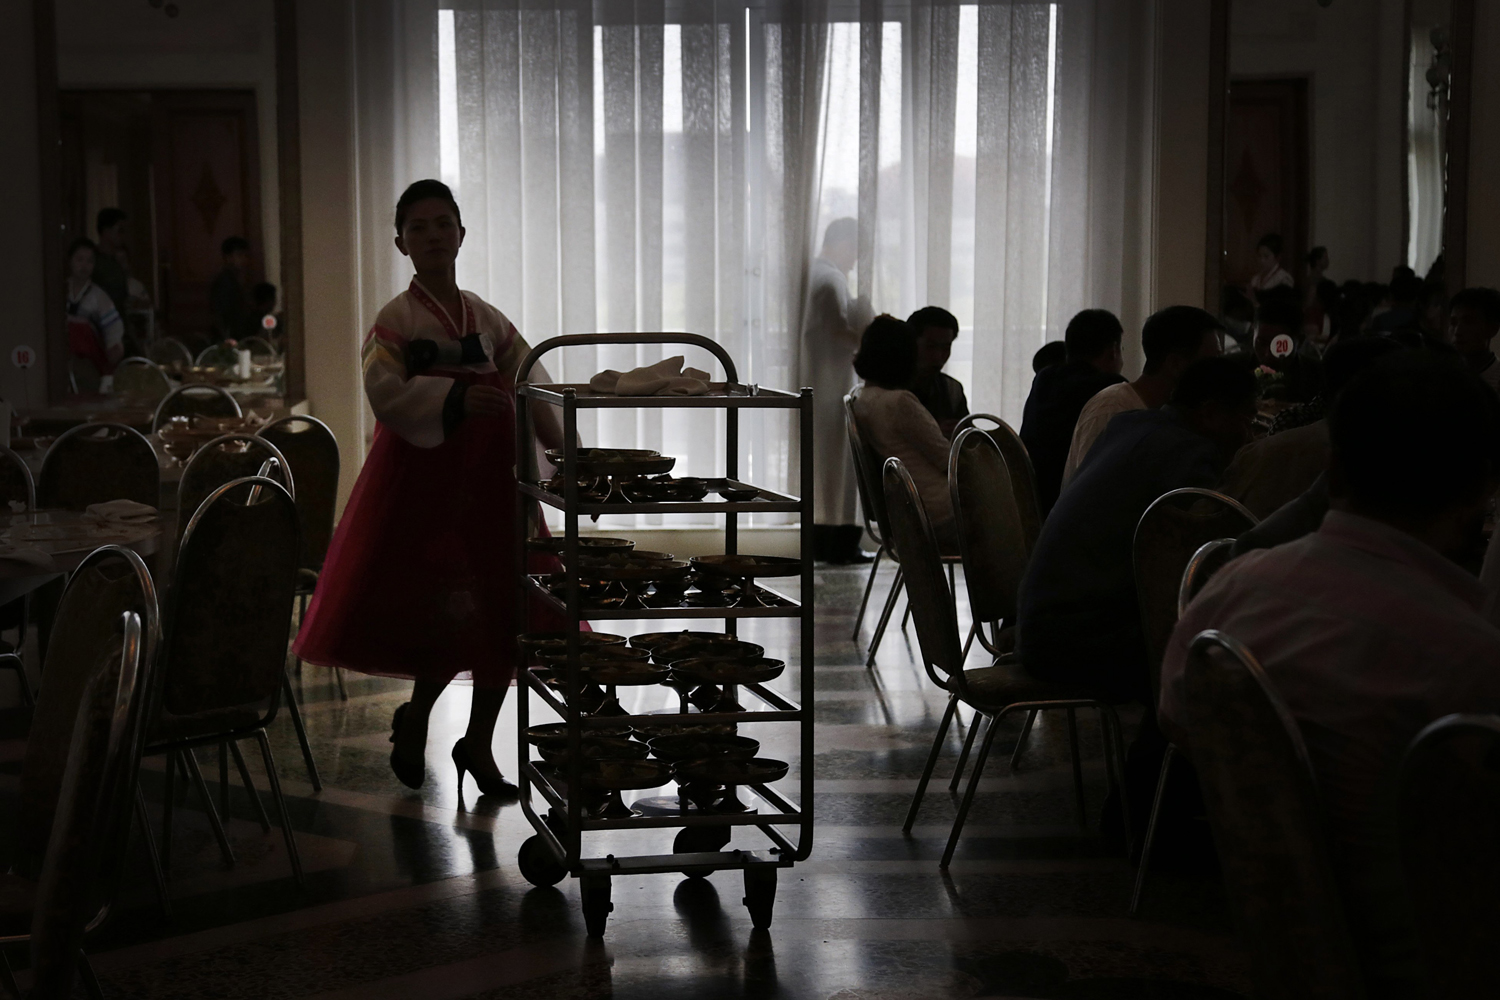 Sept. 1, 2014. A North Korean waitress is silhouetted as she pushes a trolley of noodles at the Ongyugwan dining hall of a popular noodle restaurant in Pyongyang, North Korea. The restaurant, built in 1960 at the instructions of the late leader Kim Il Sung, claims to serve 10,000 lunches a day.